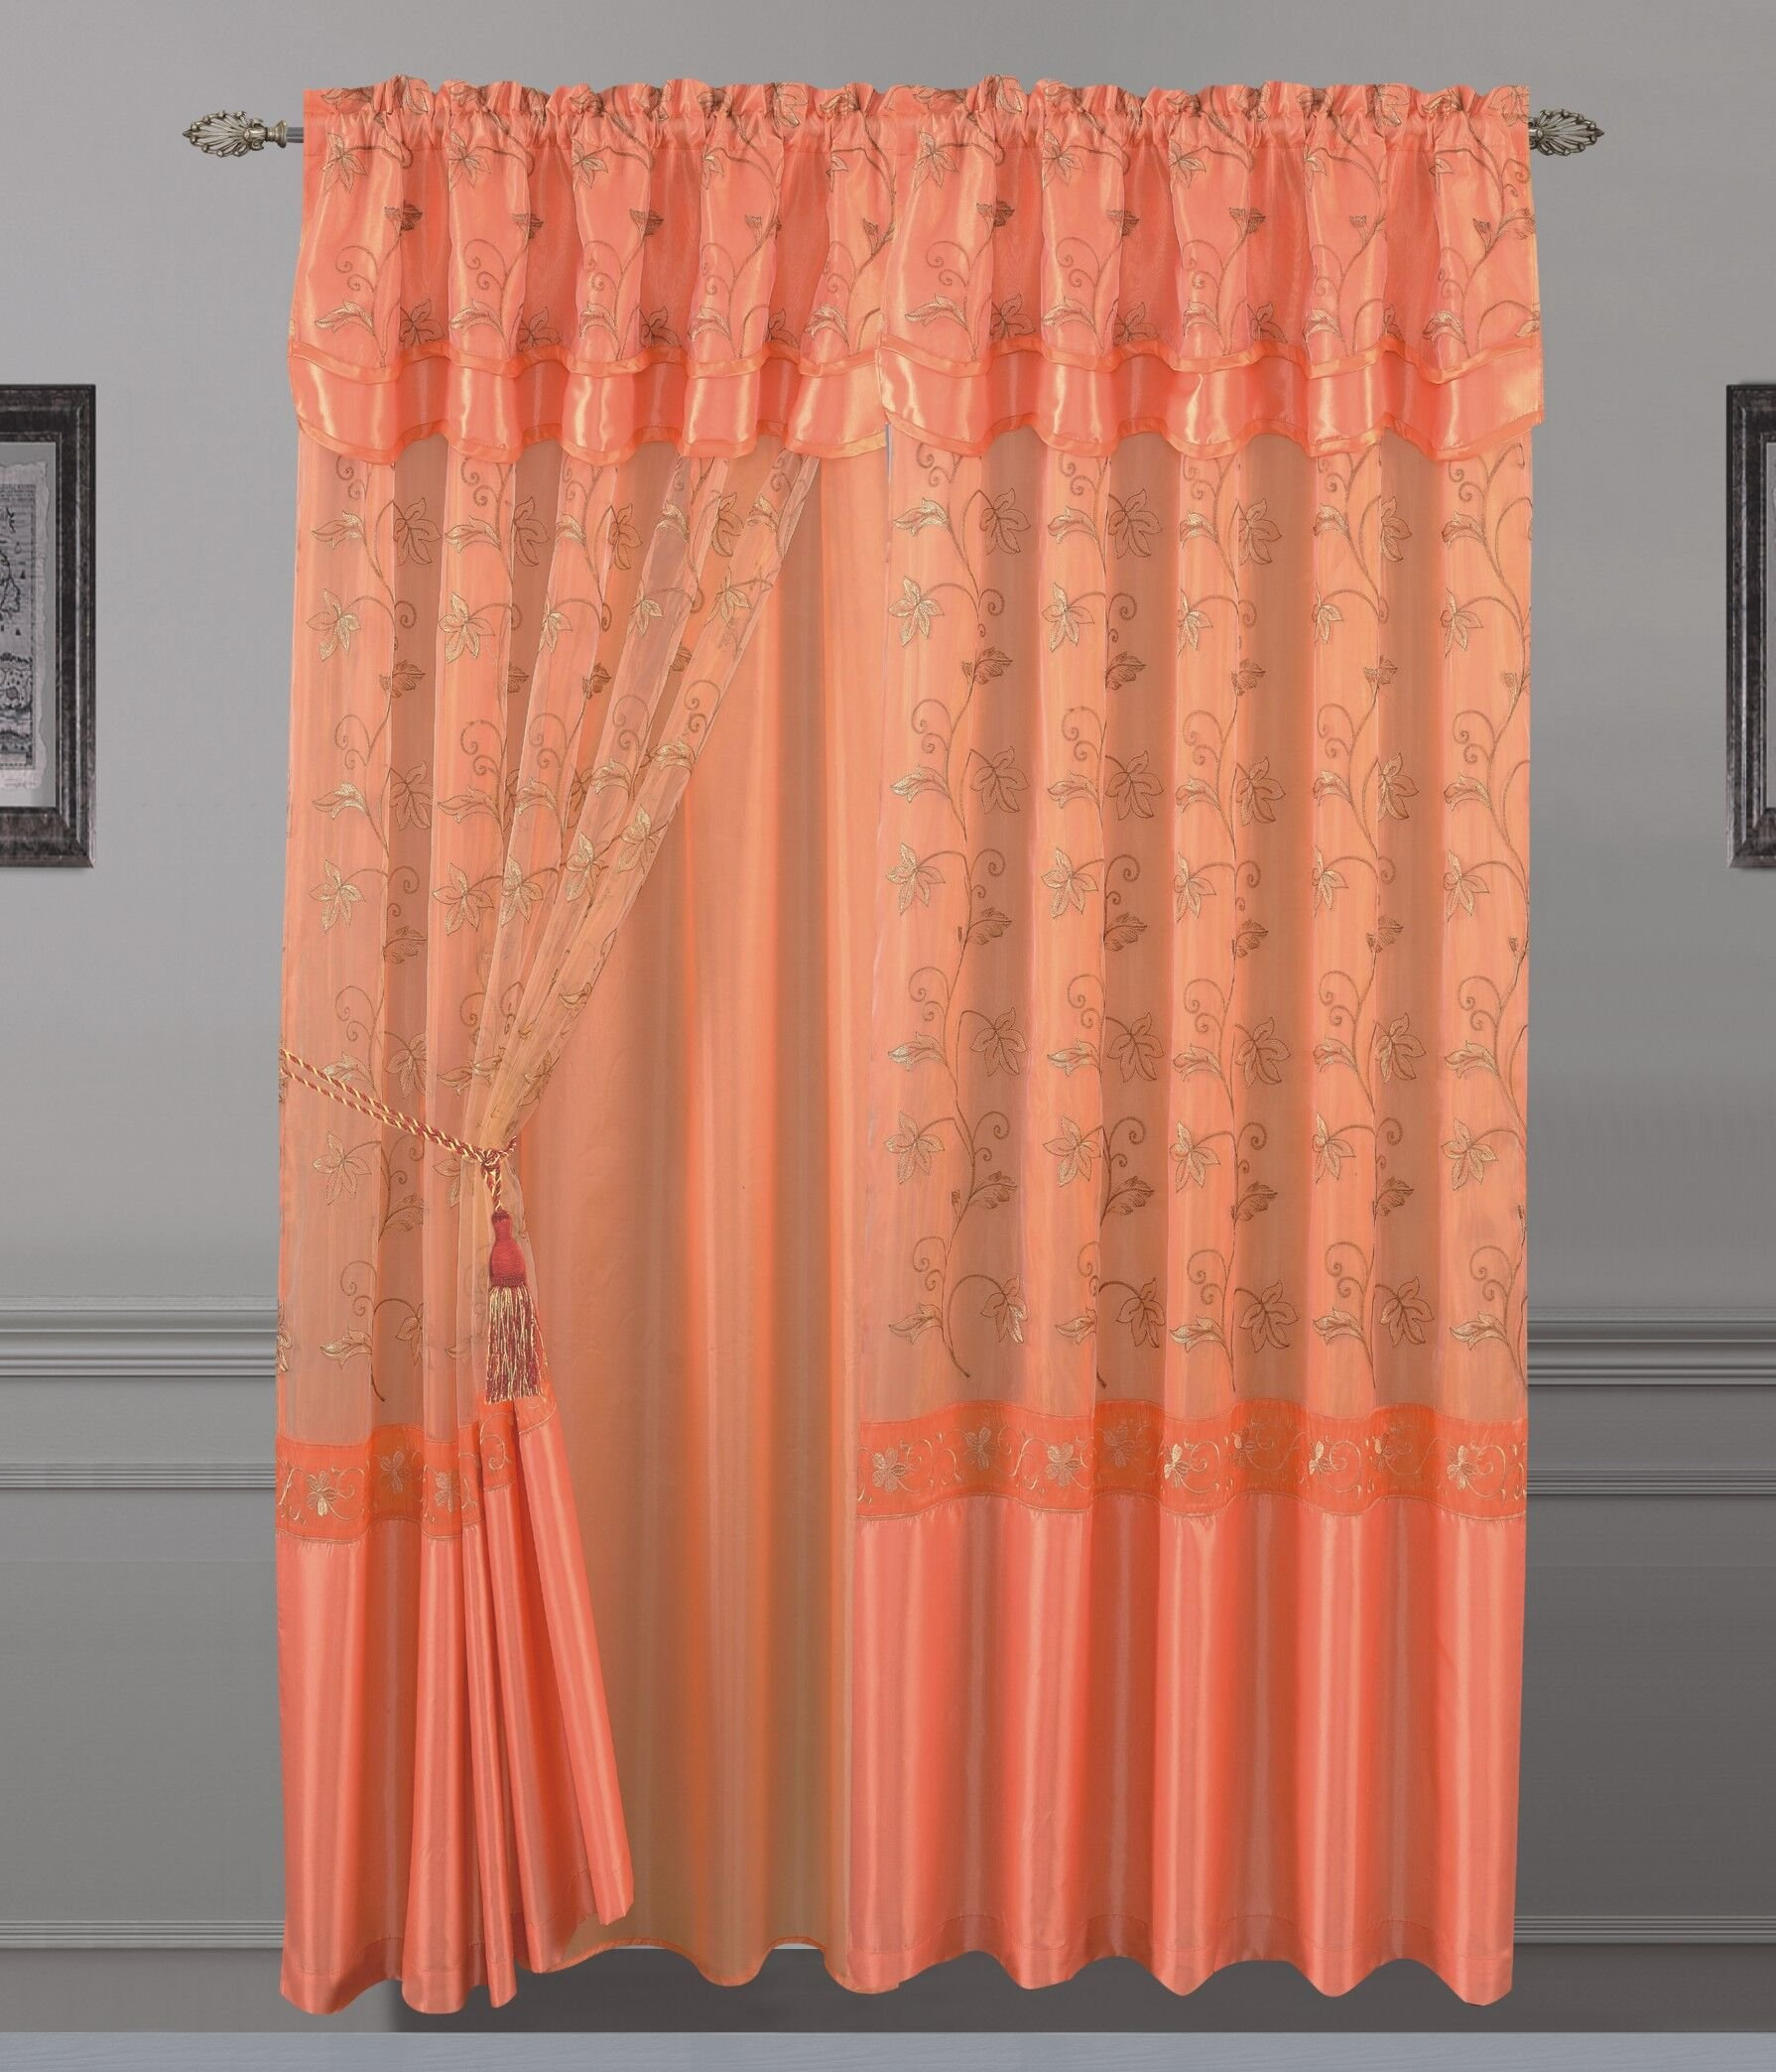 All American Collection New 2 Panel Elegant Embroidered Curtain with Attached Valance by All American Collection